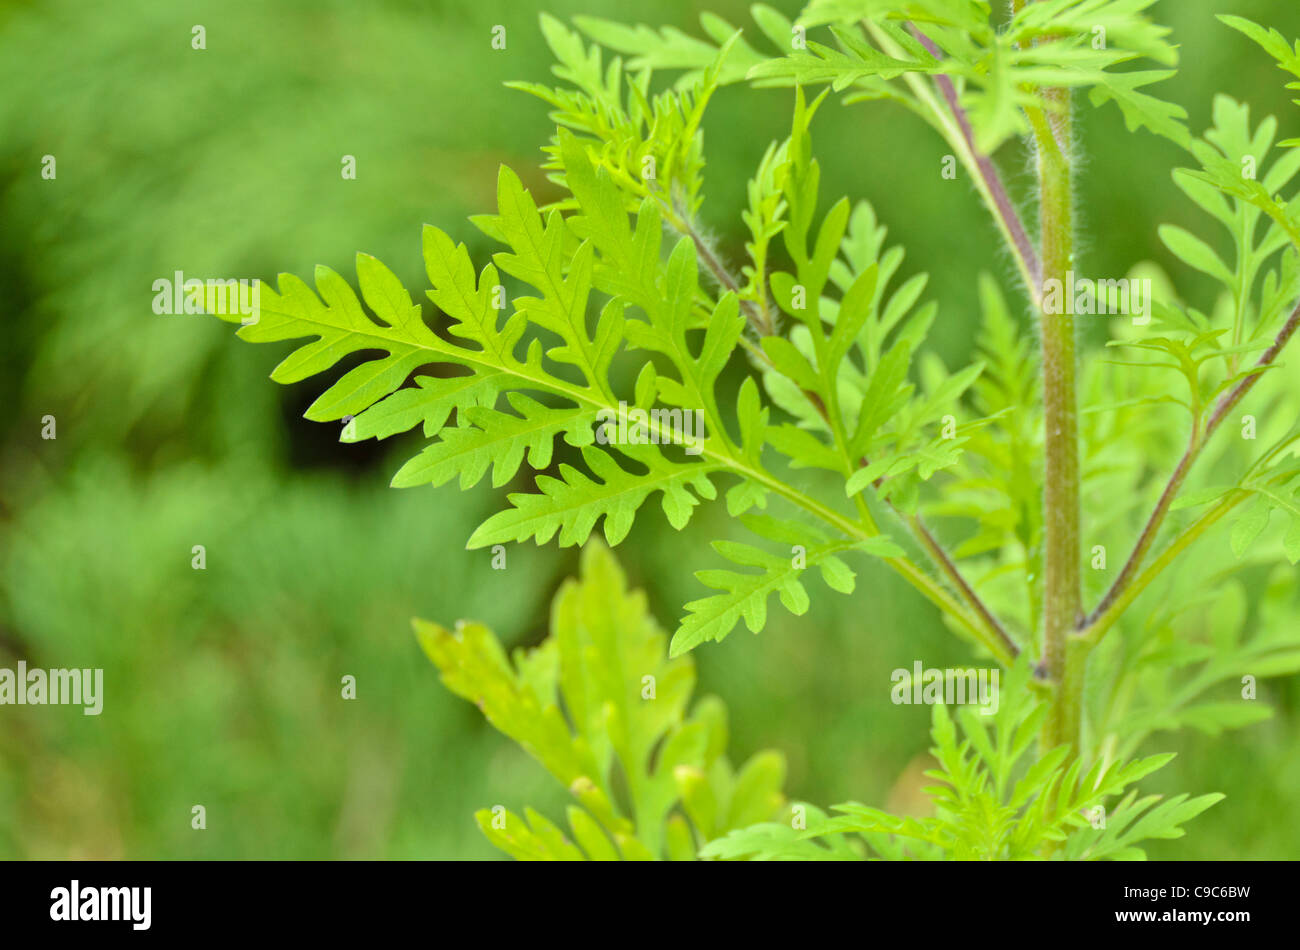 Common ragweed (Ambrosia artemisiifolia) Stock Photo